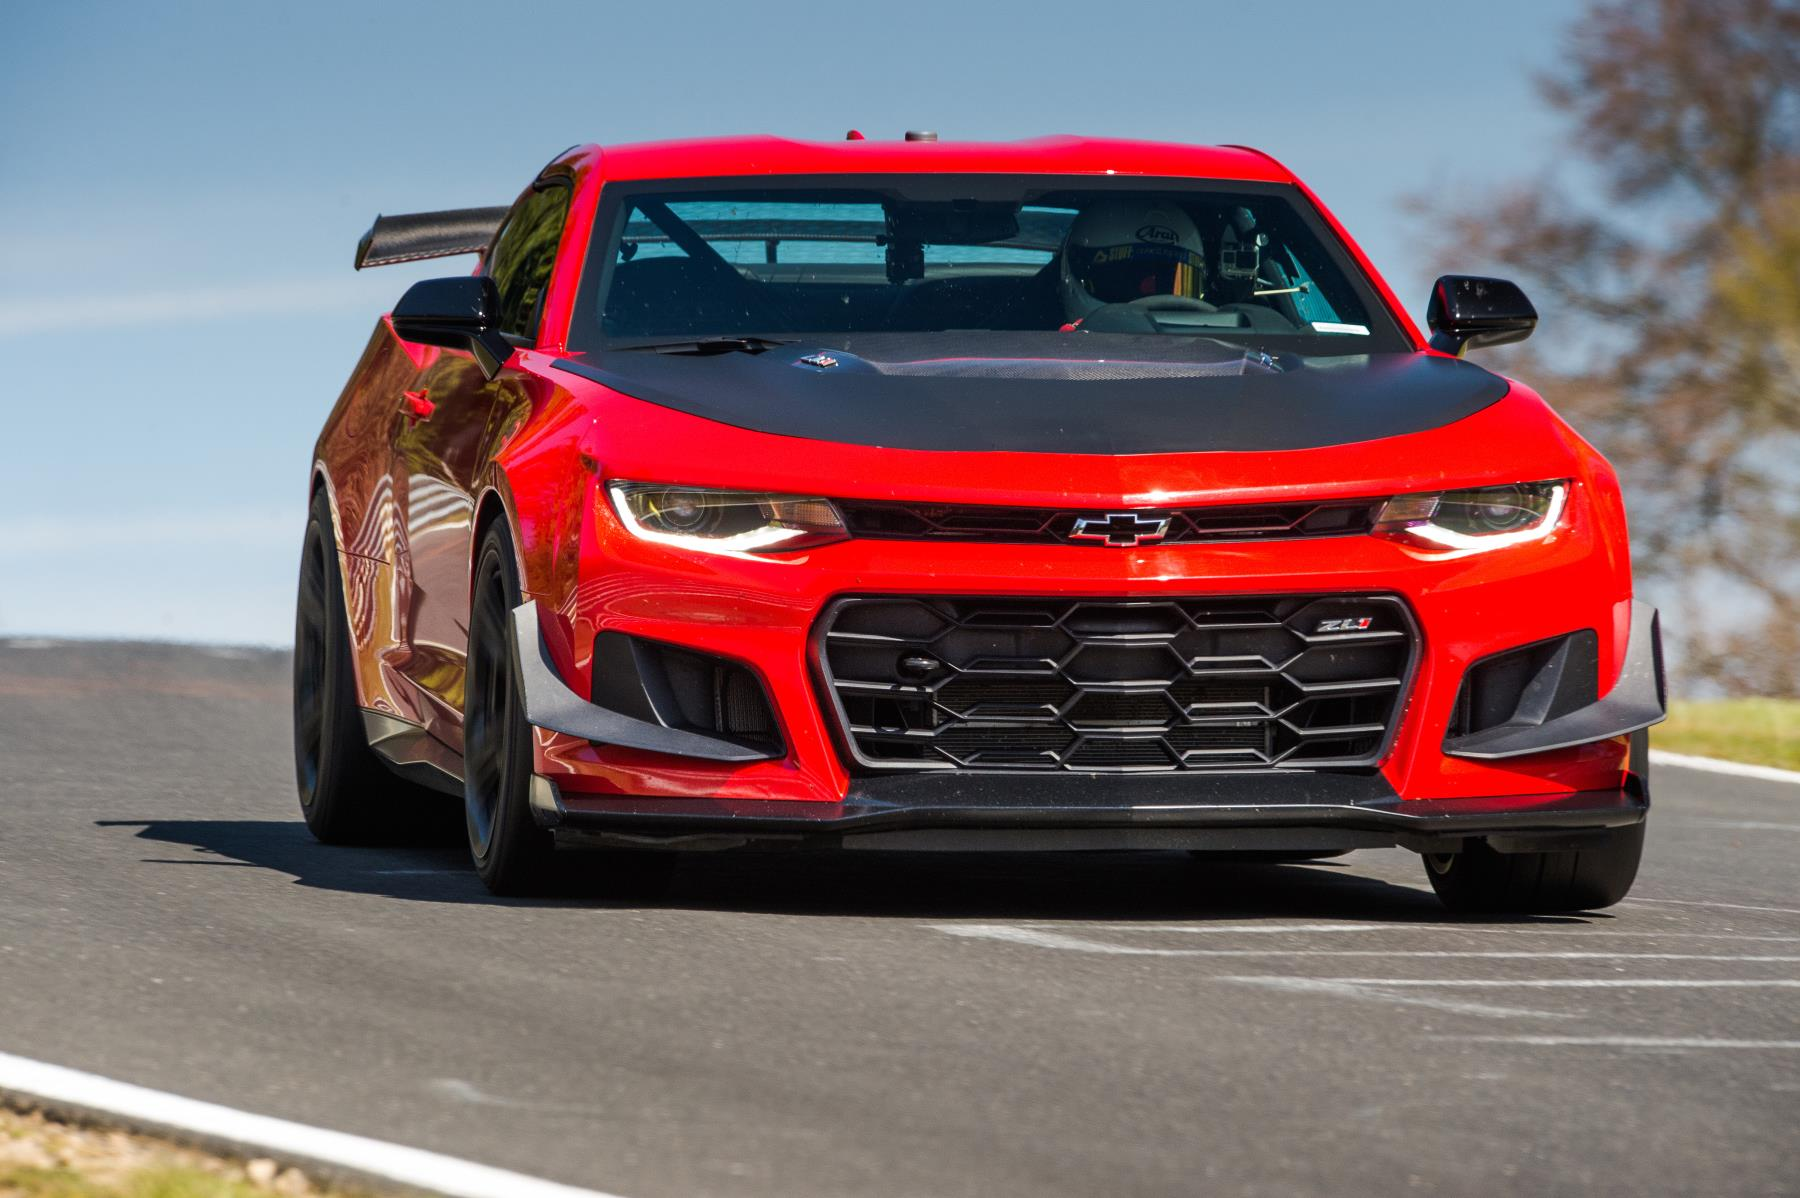 Chevrolet Camaro ZL1 1LE Just Became the Fastest Camaro at Nürburgring